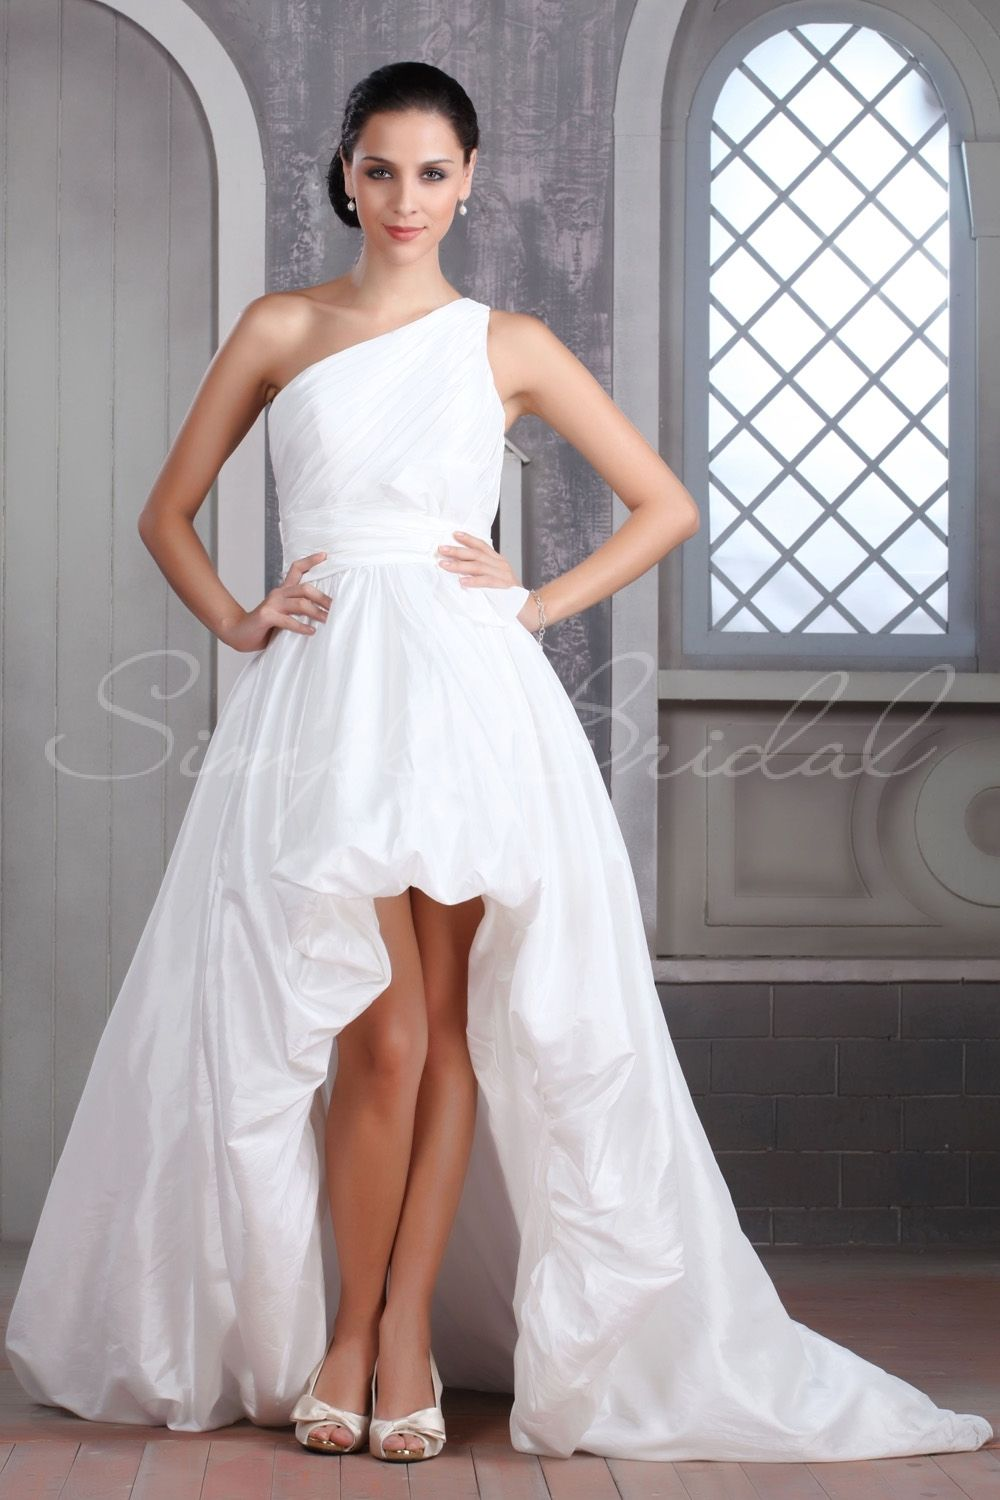 With cowboy boots and with sweetheart neckline instead of one